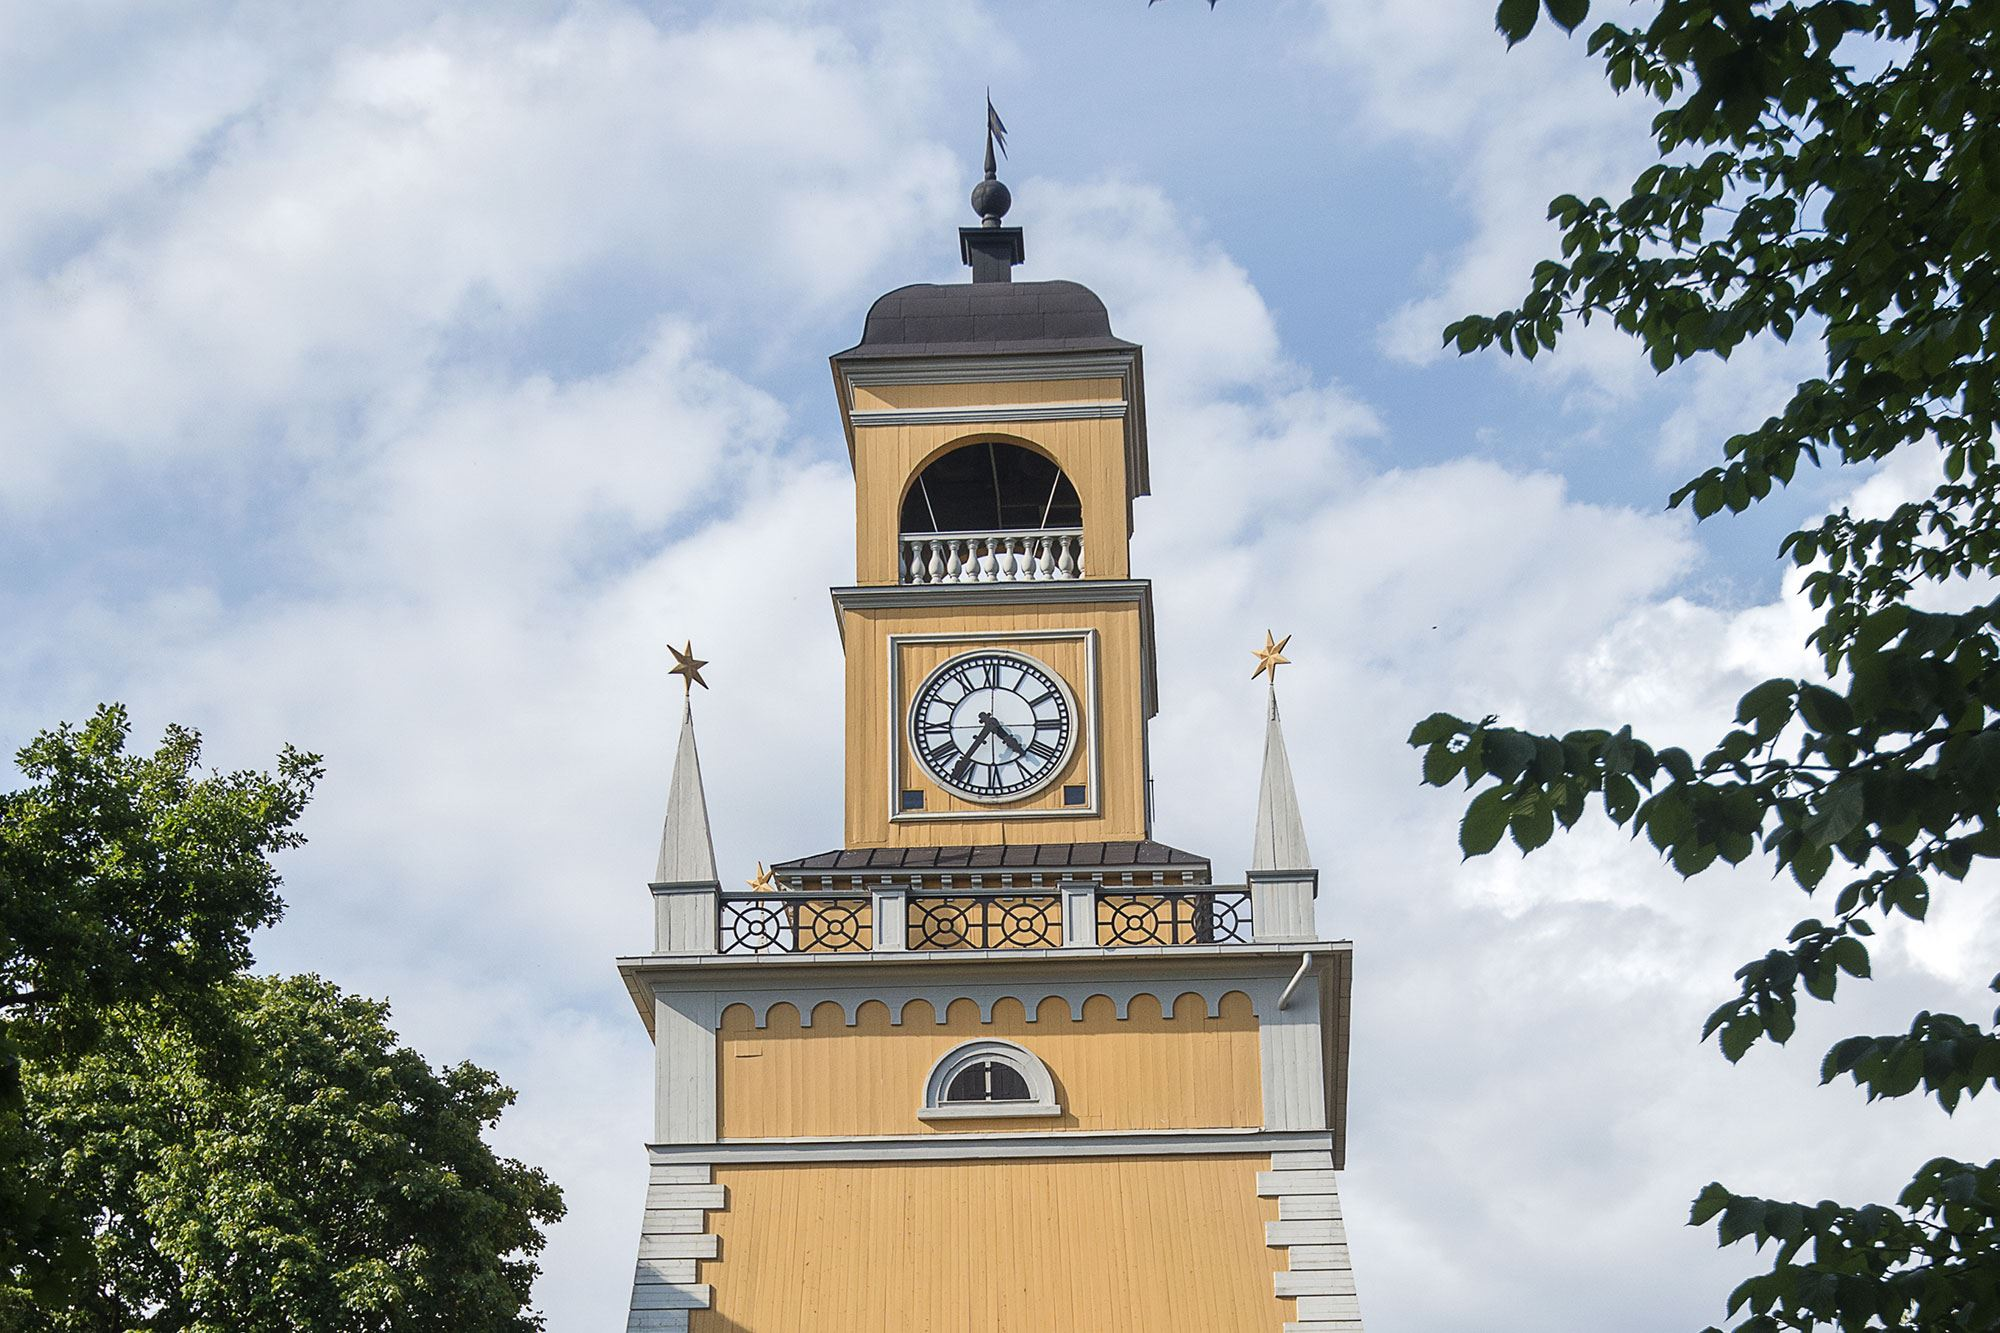 Guided tour - Karlskrona in 60 minutes in English